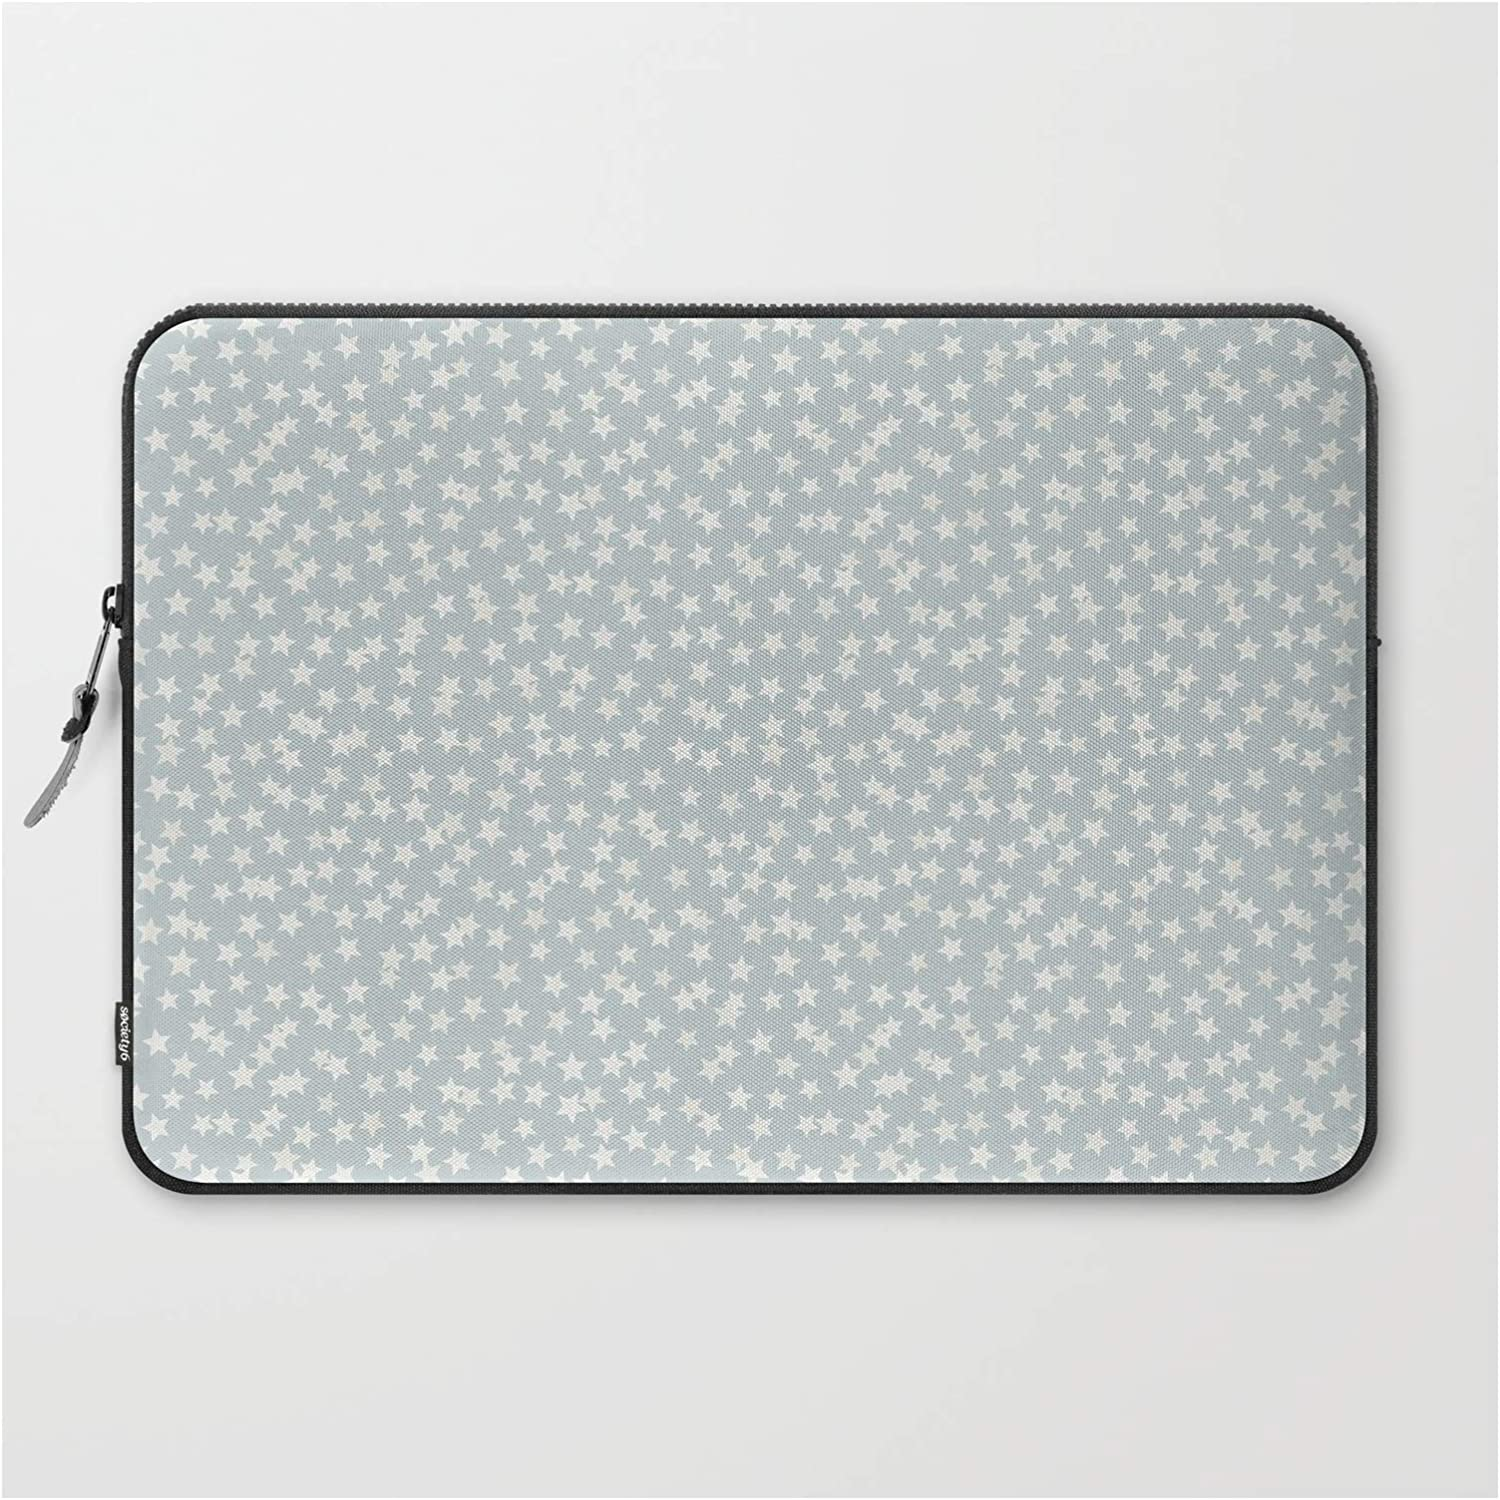 """Laptop Sleeve - Laptop Sleeve - 15"""" - Silver Stars Confetti by Kind of Style"""